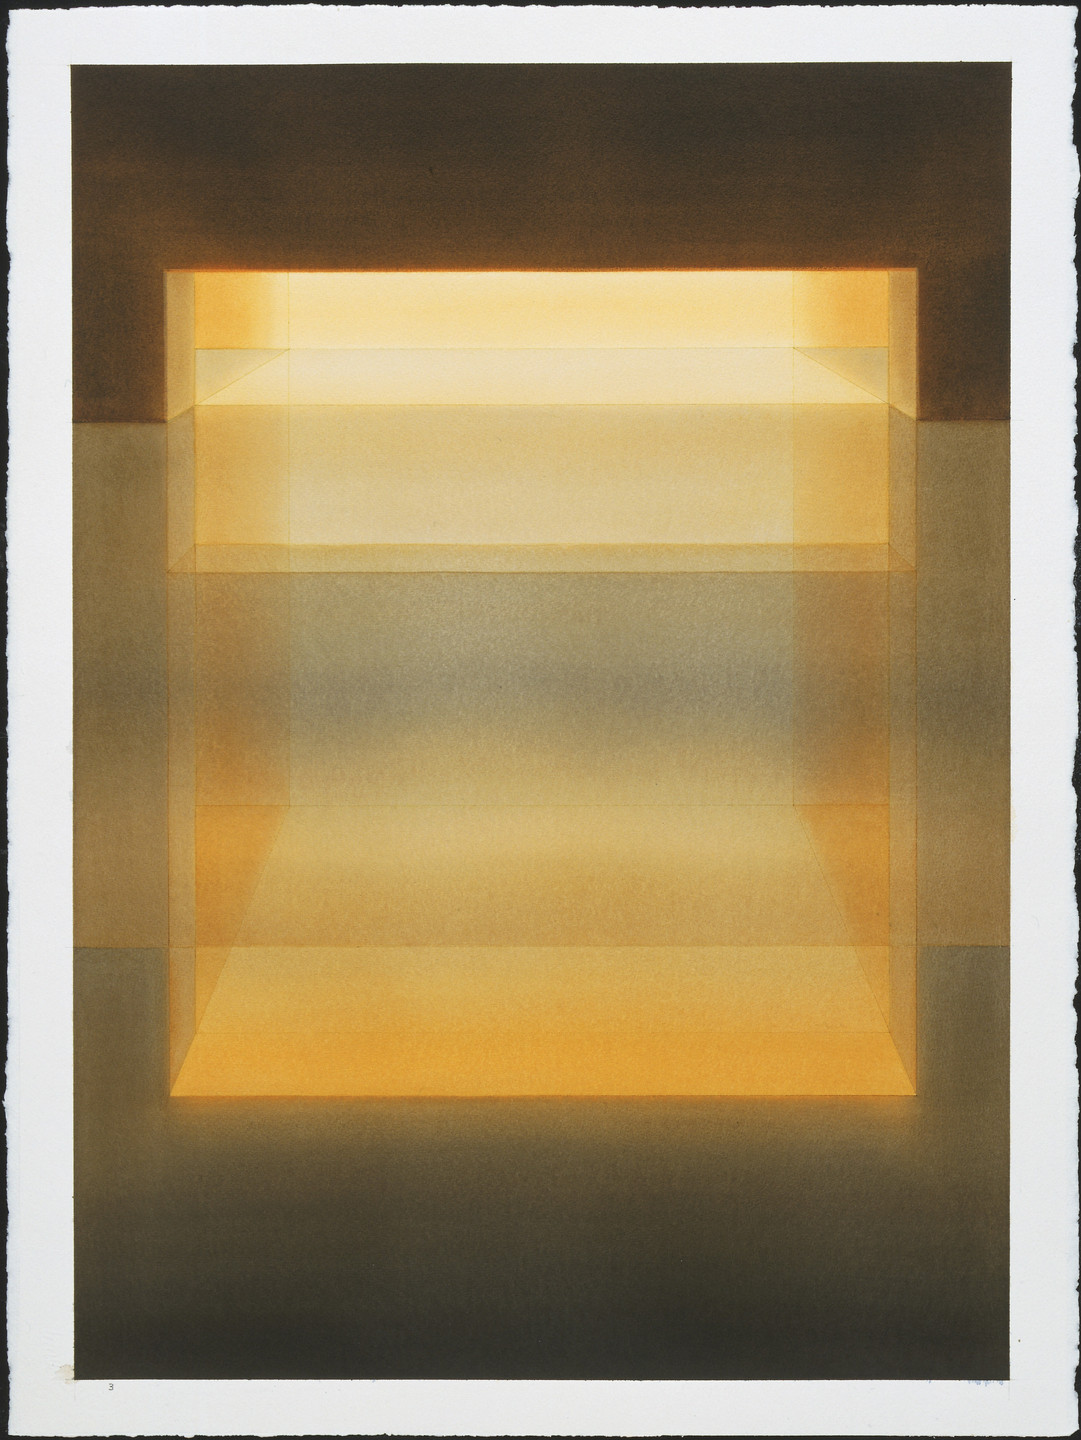 Lauretta Vinciarelli. Orange Sound, project. 1999